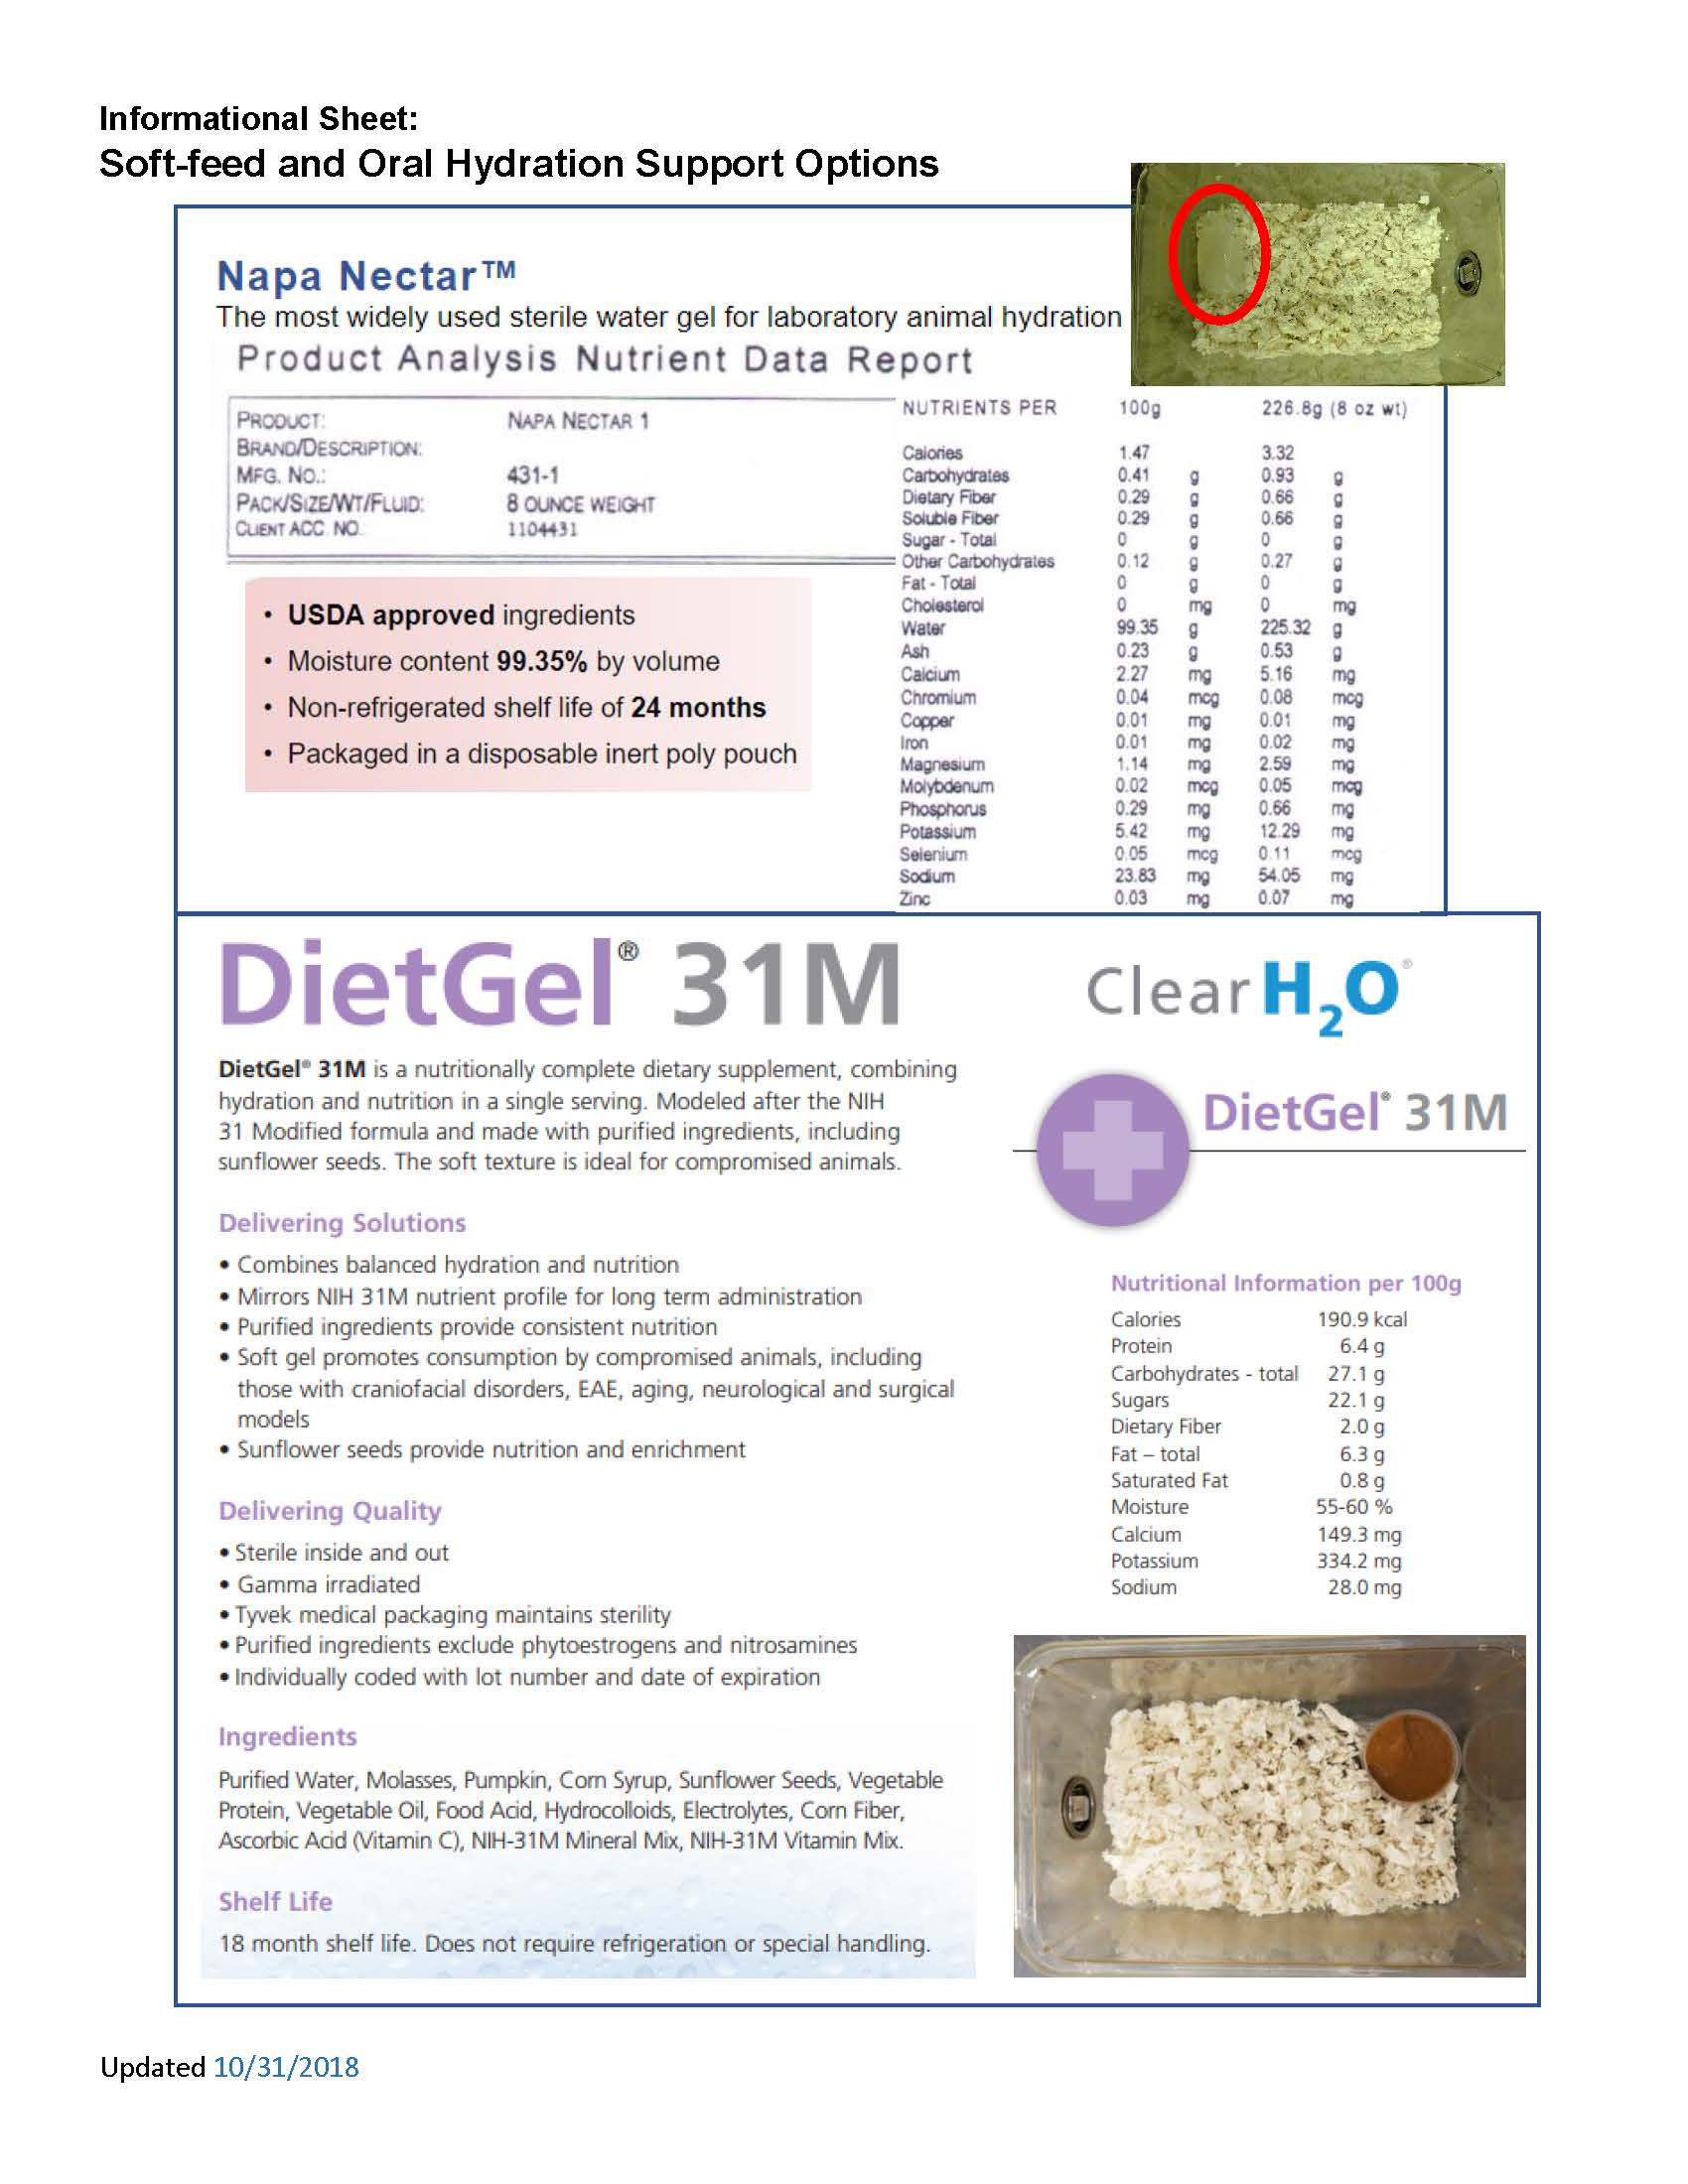 Image of the breakdown of nutritional content for both Napa Nectar and DietGel products